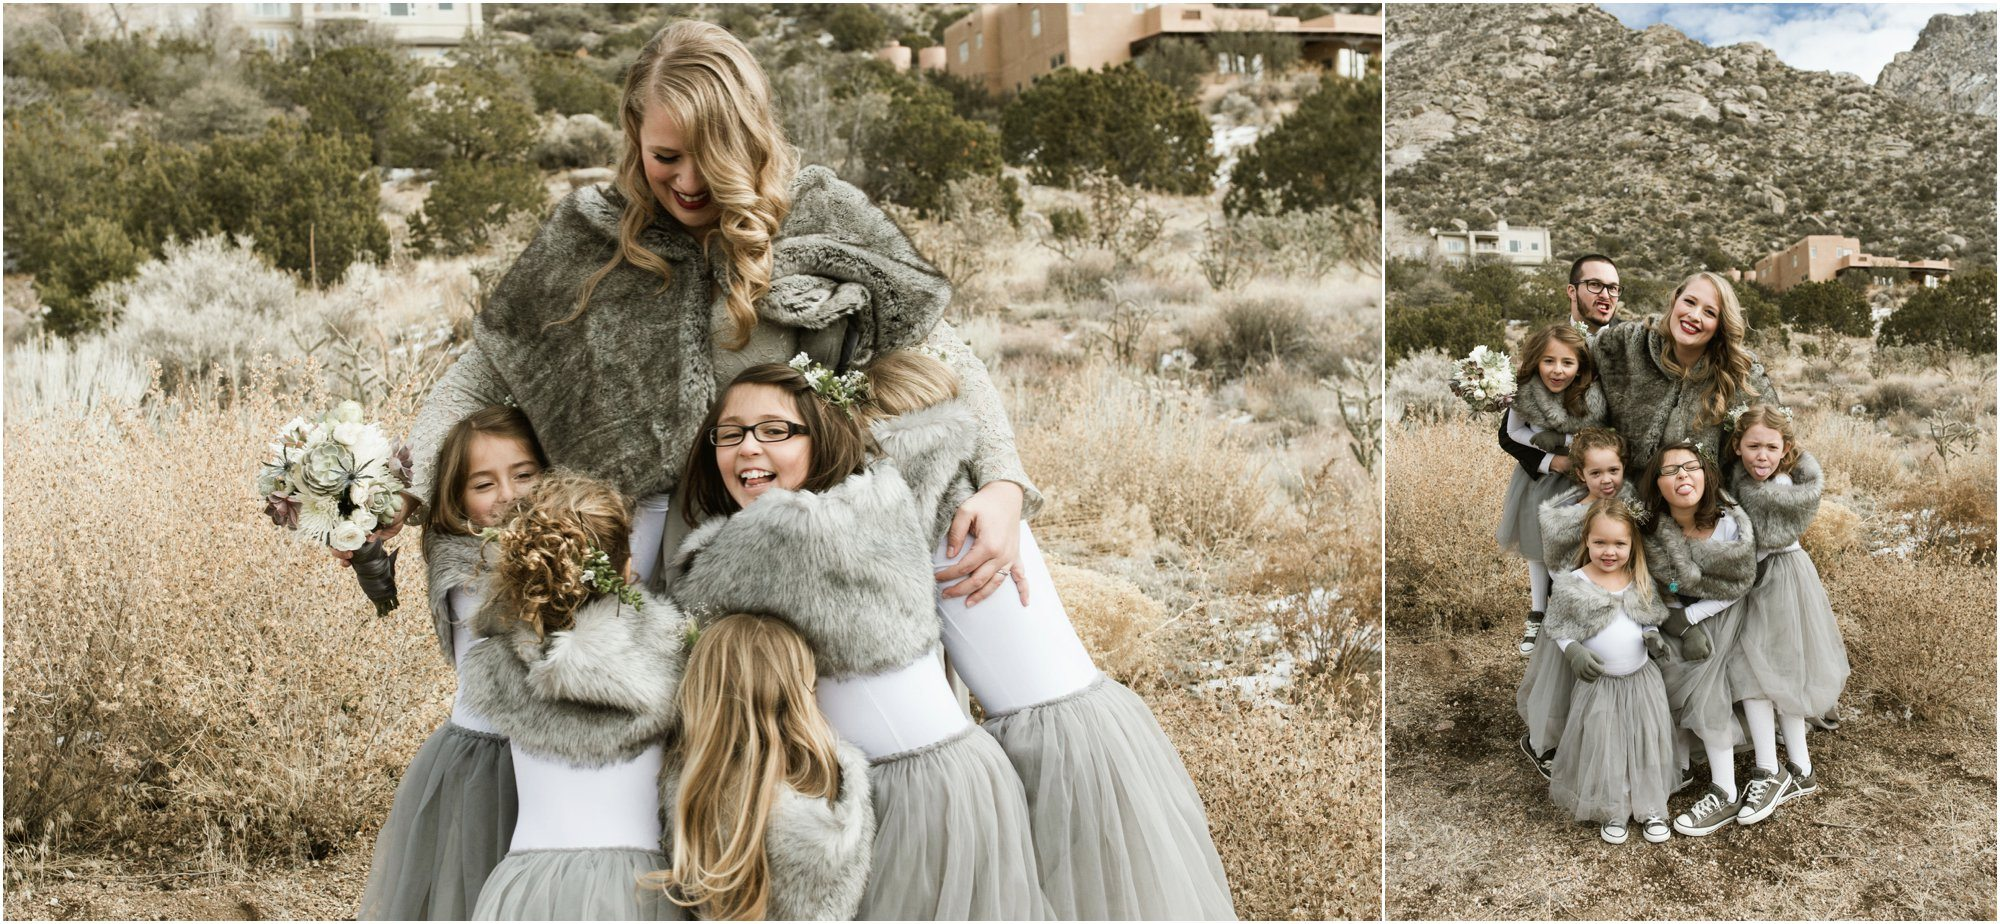 0073BlueRosePhotography_ Albuquerque Wedding Photographer_ Santa Fe Wedding Photographer